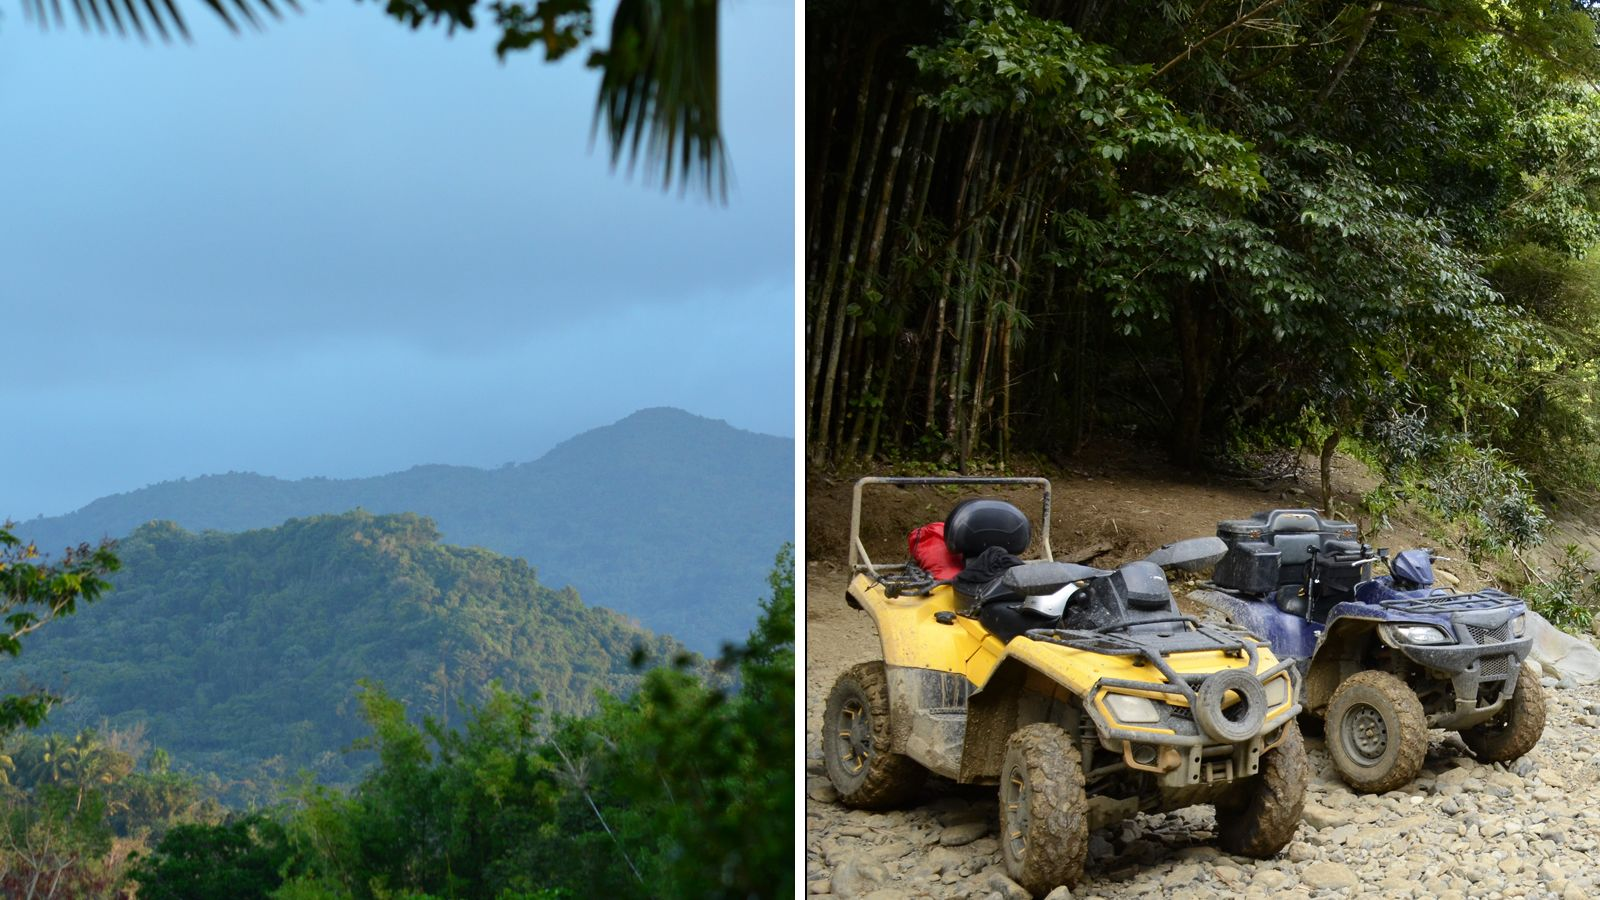 Self guided Nature Walk in El Yunque Forest &Quad bike Experience